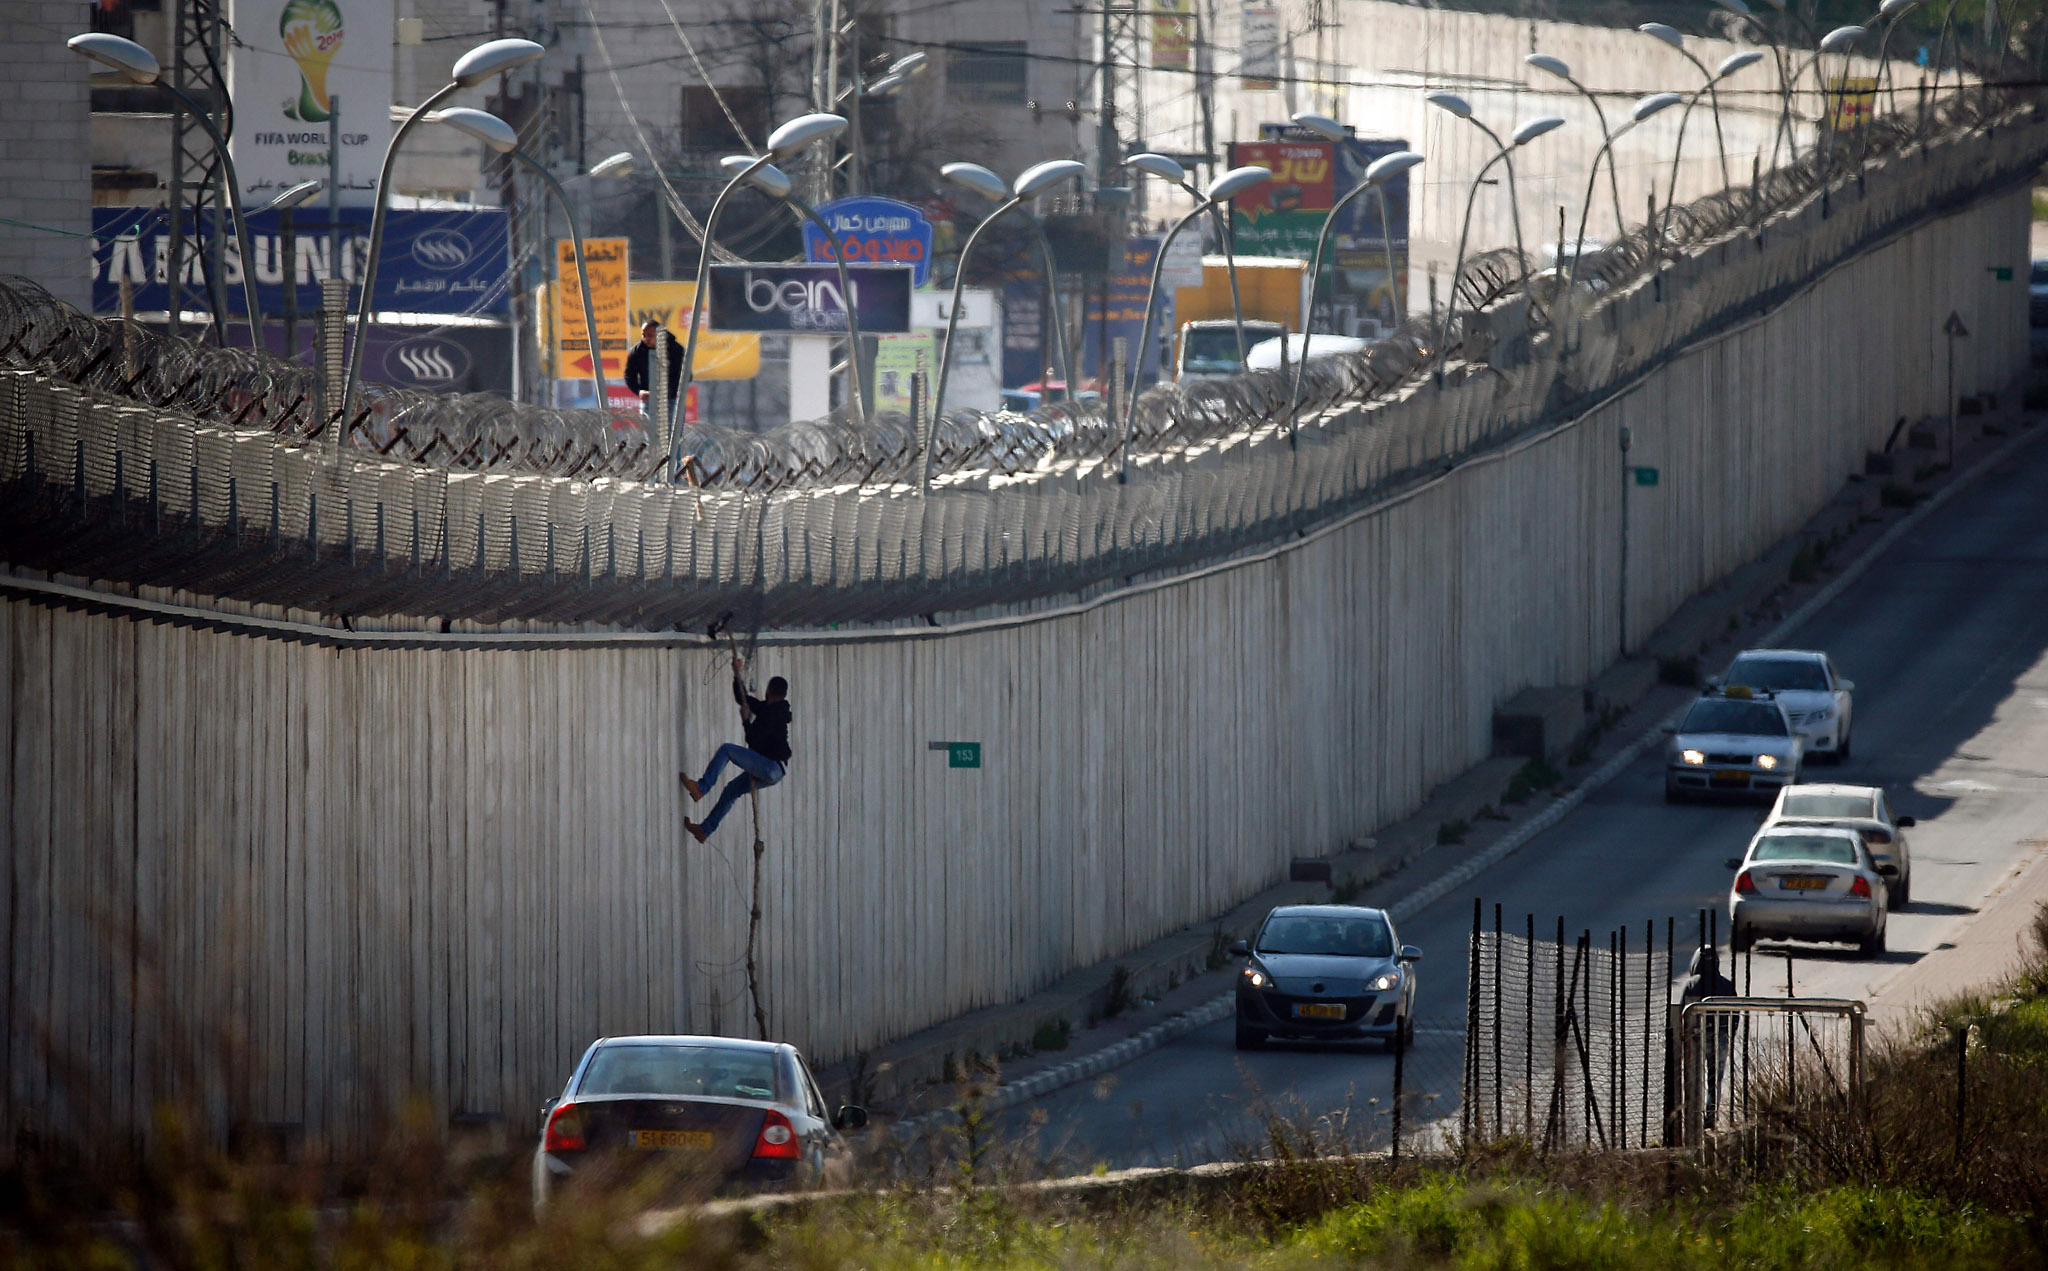 A Palestinian man uses a rope to climb over a section of Israel's controversial separation barrier that separates the West Bank city of al-Ram from east Jerusalem